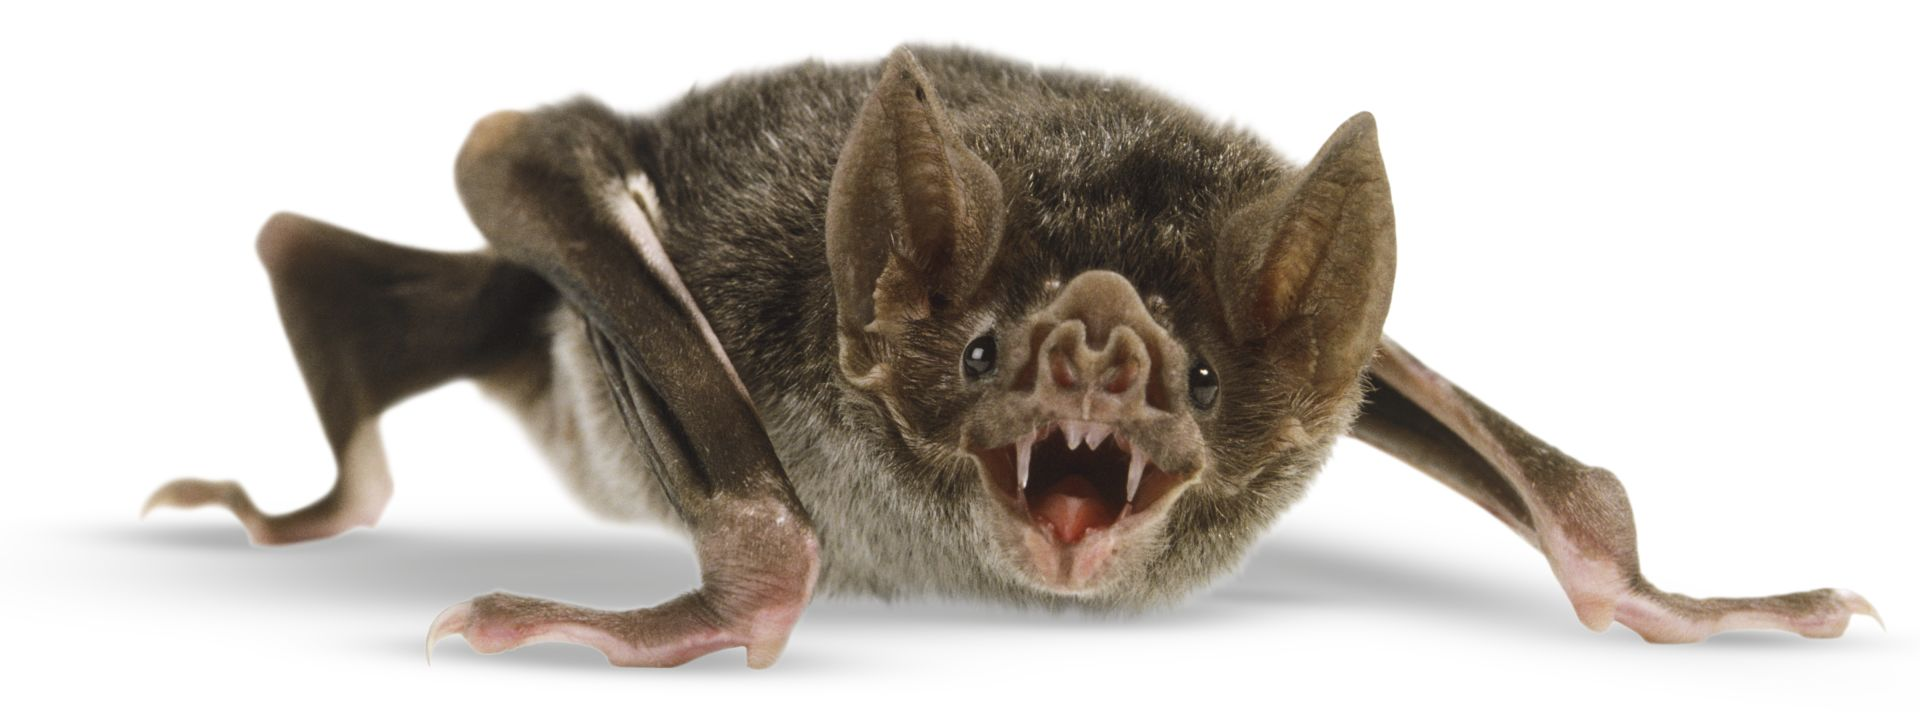 Vampire Bat Facts Vampire Bat Facts For Kids Dk Find Out